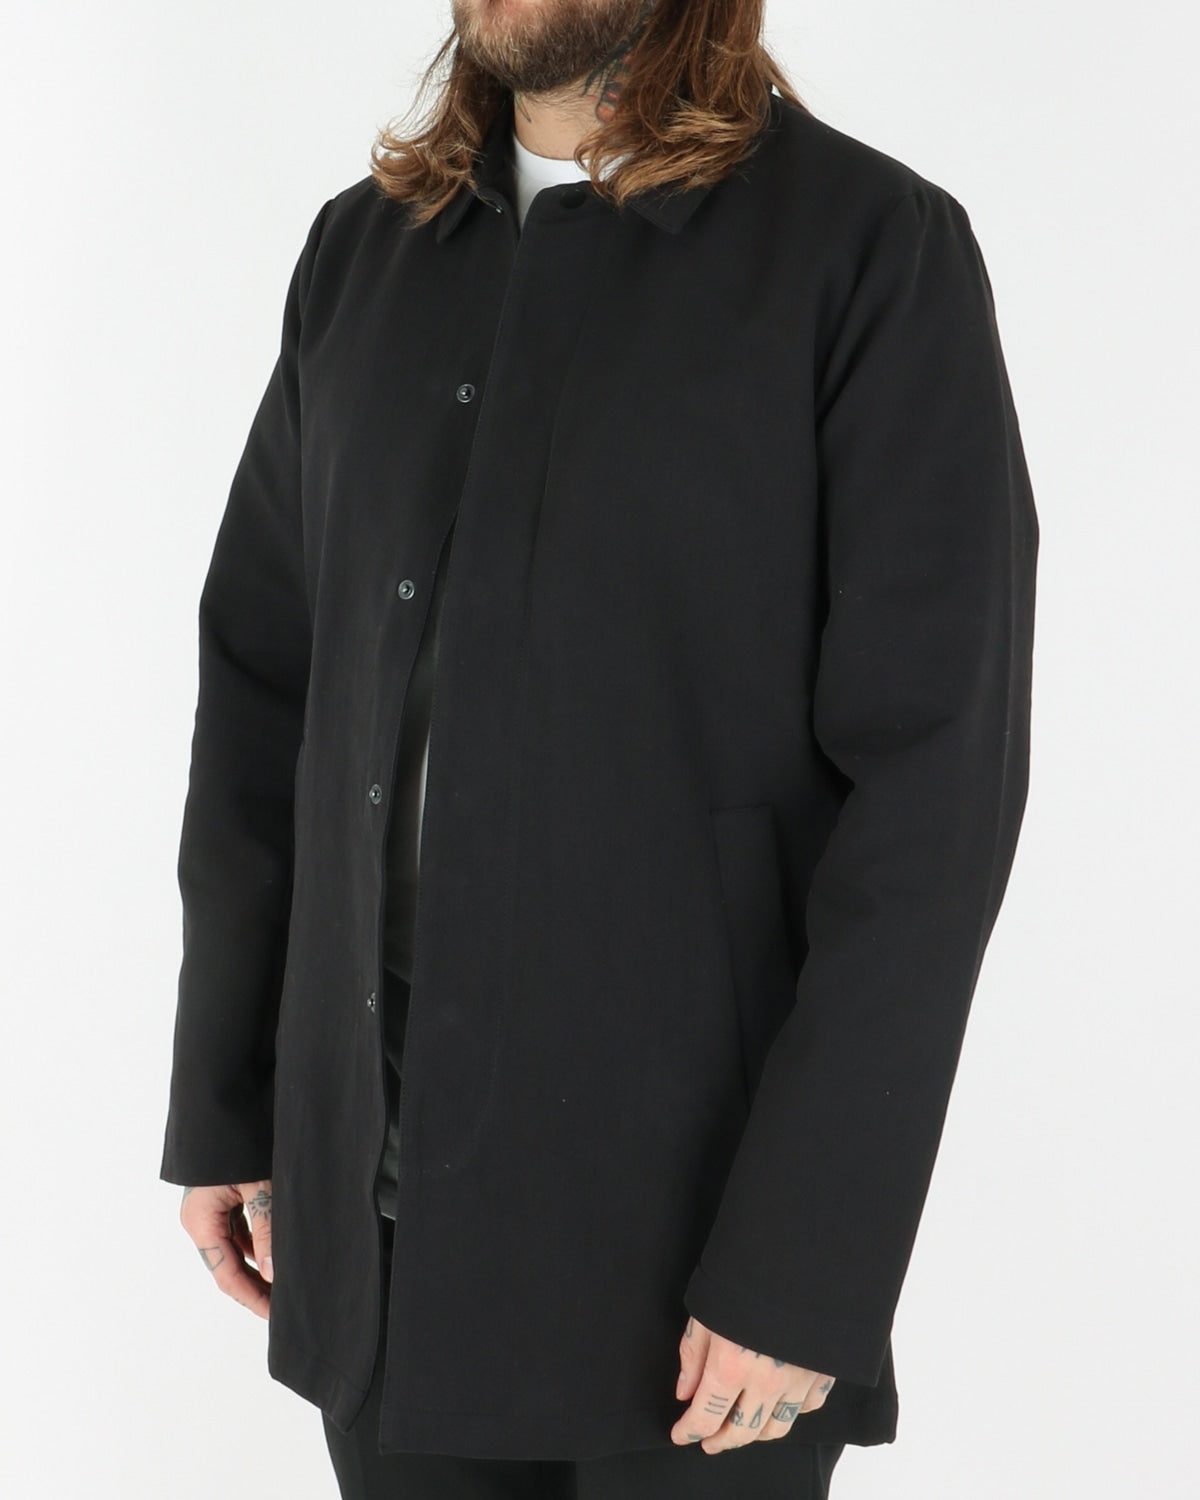 legends_spring mac coat_black_view_2_4